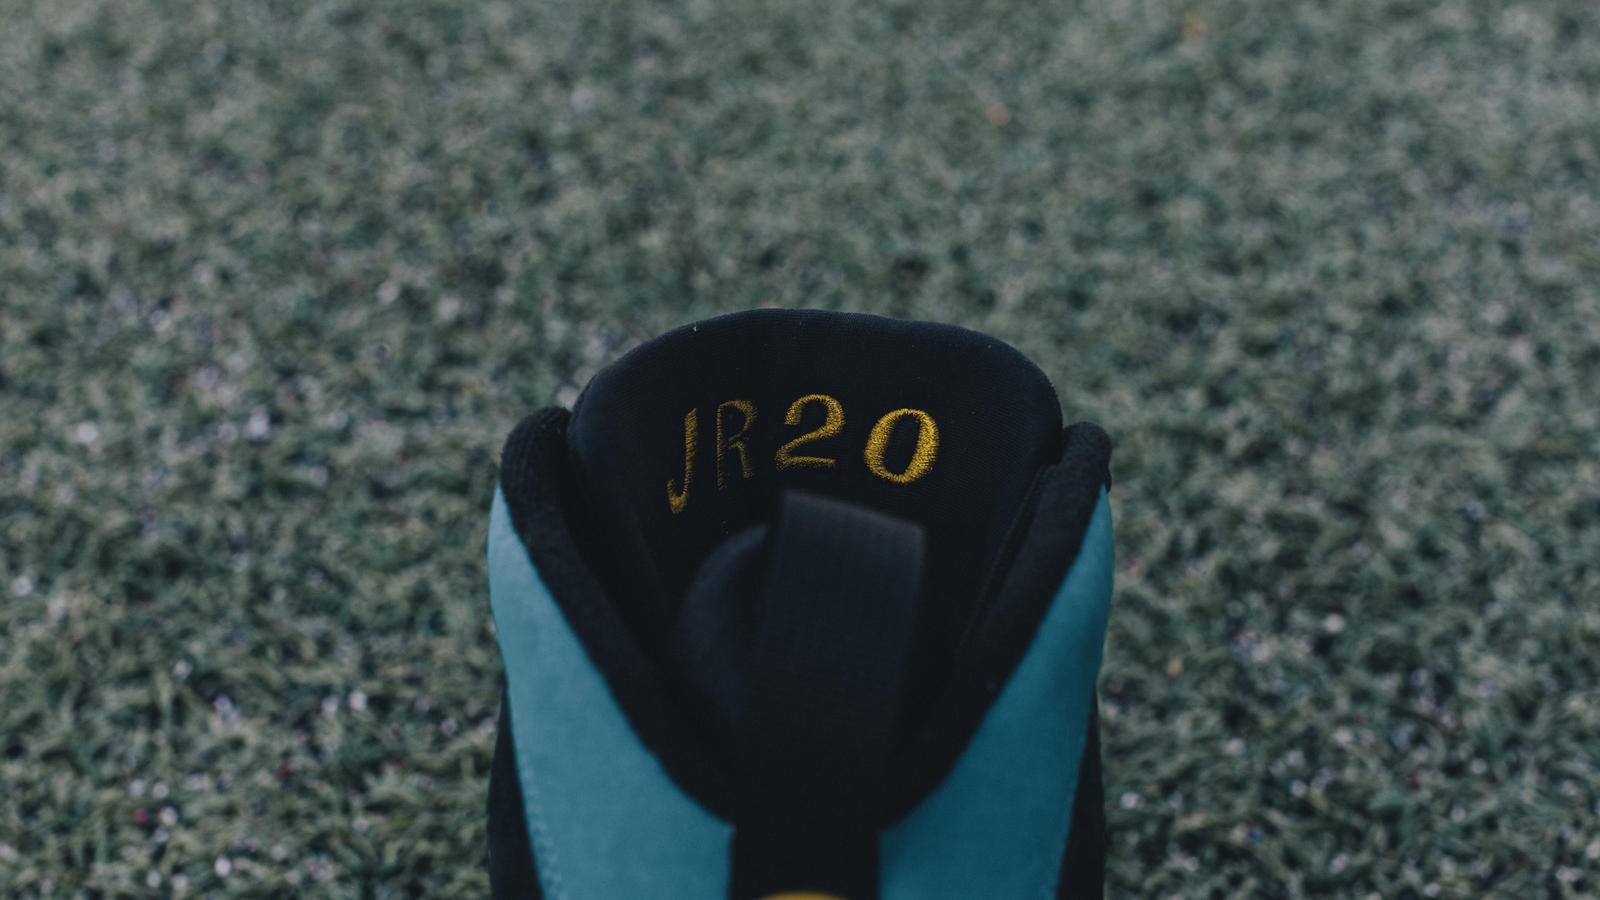 Jalen Ramsey Air Jordan IX PE Cleat